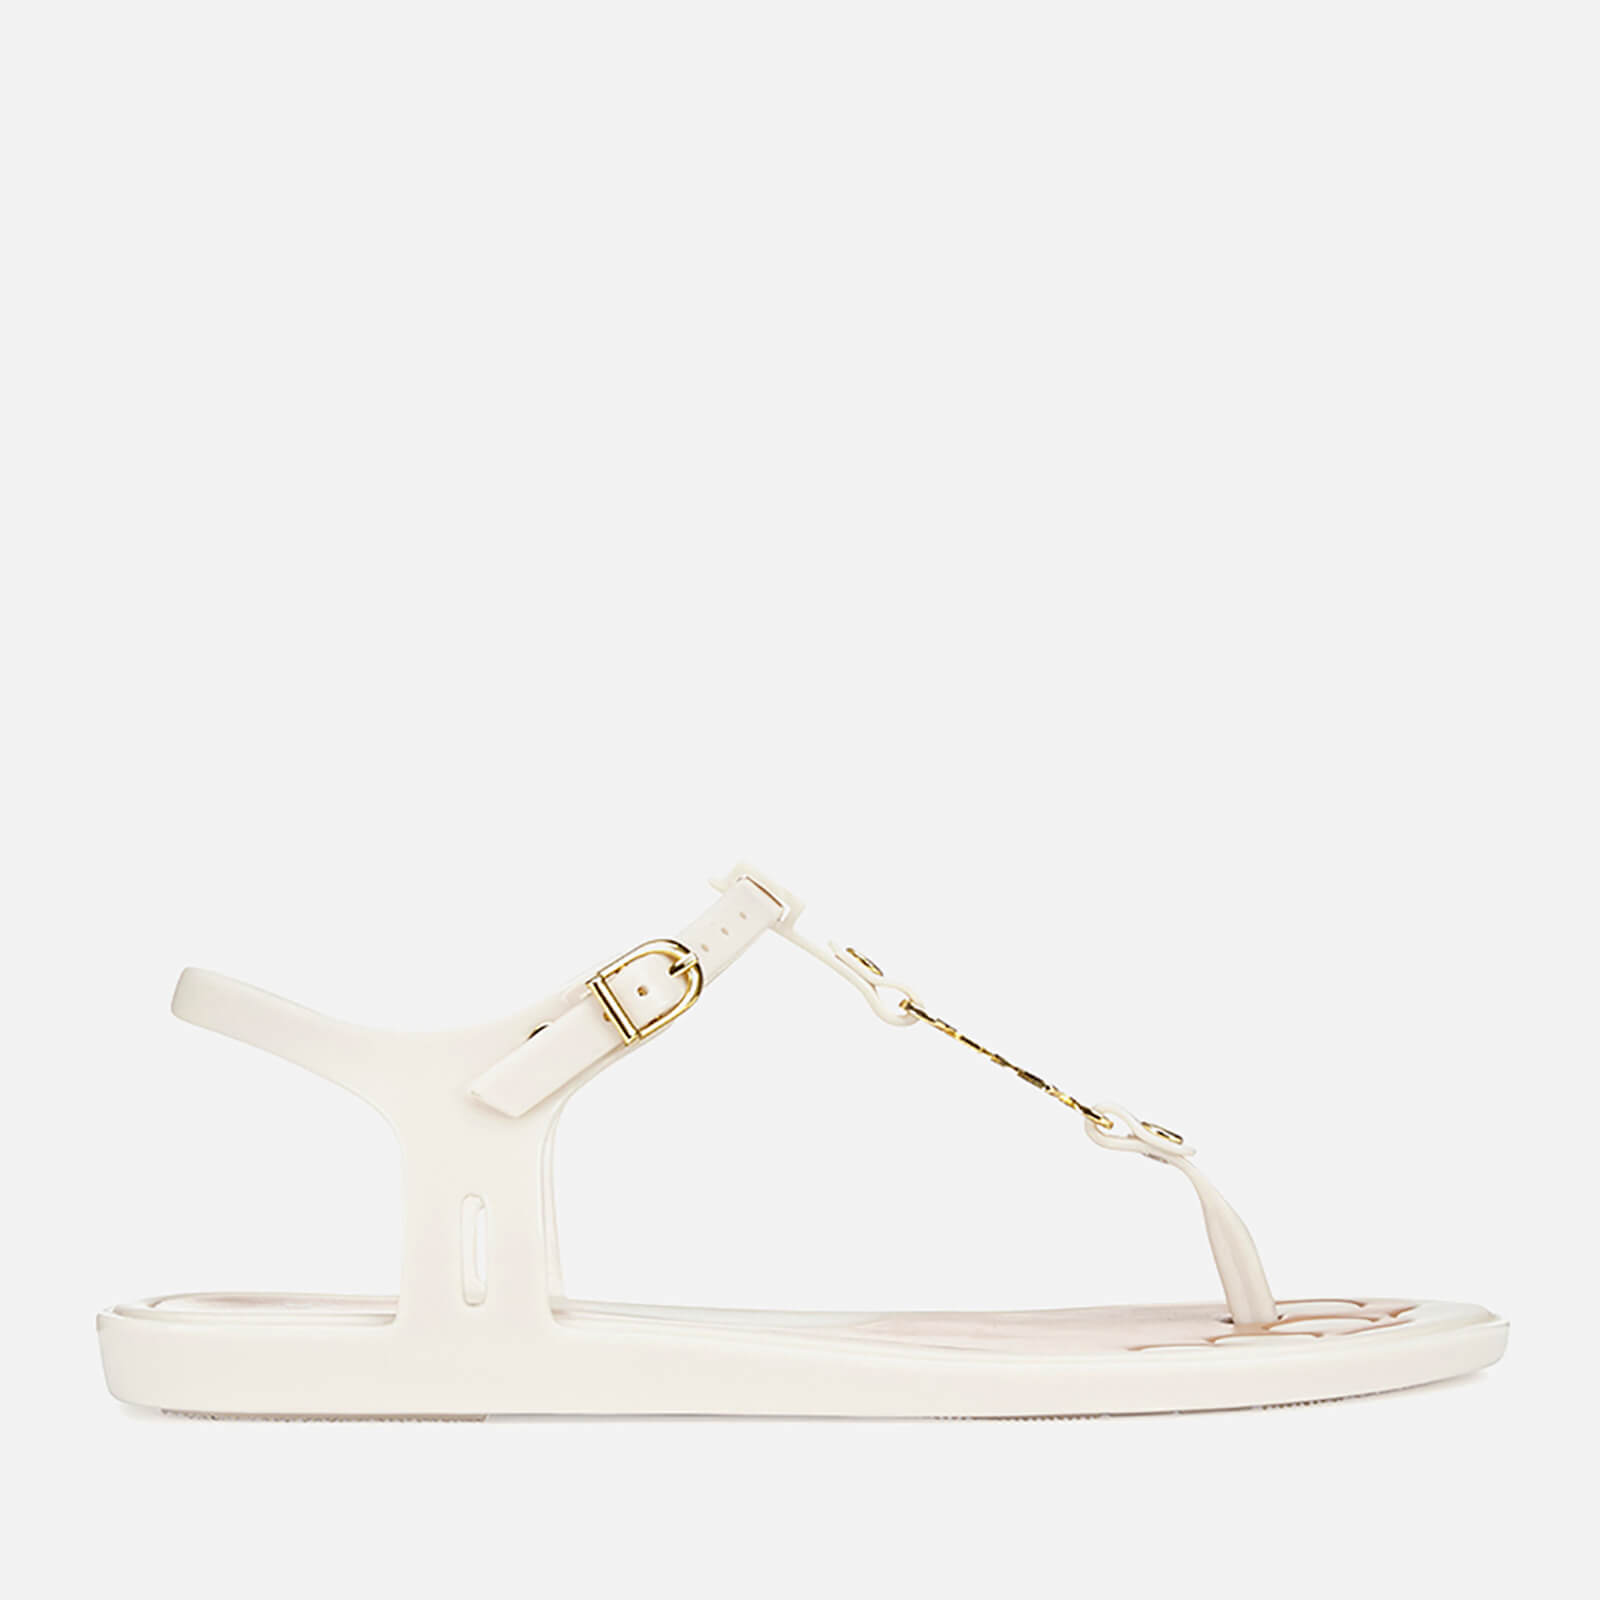 08961acf03fa54 Vivienne Westwood For Melissa Women s Solar 21 Toe Post Sandals - White  Contrast - Free UK Delivery over £50